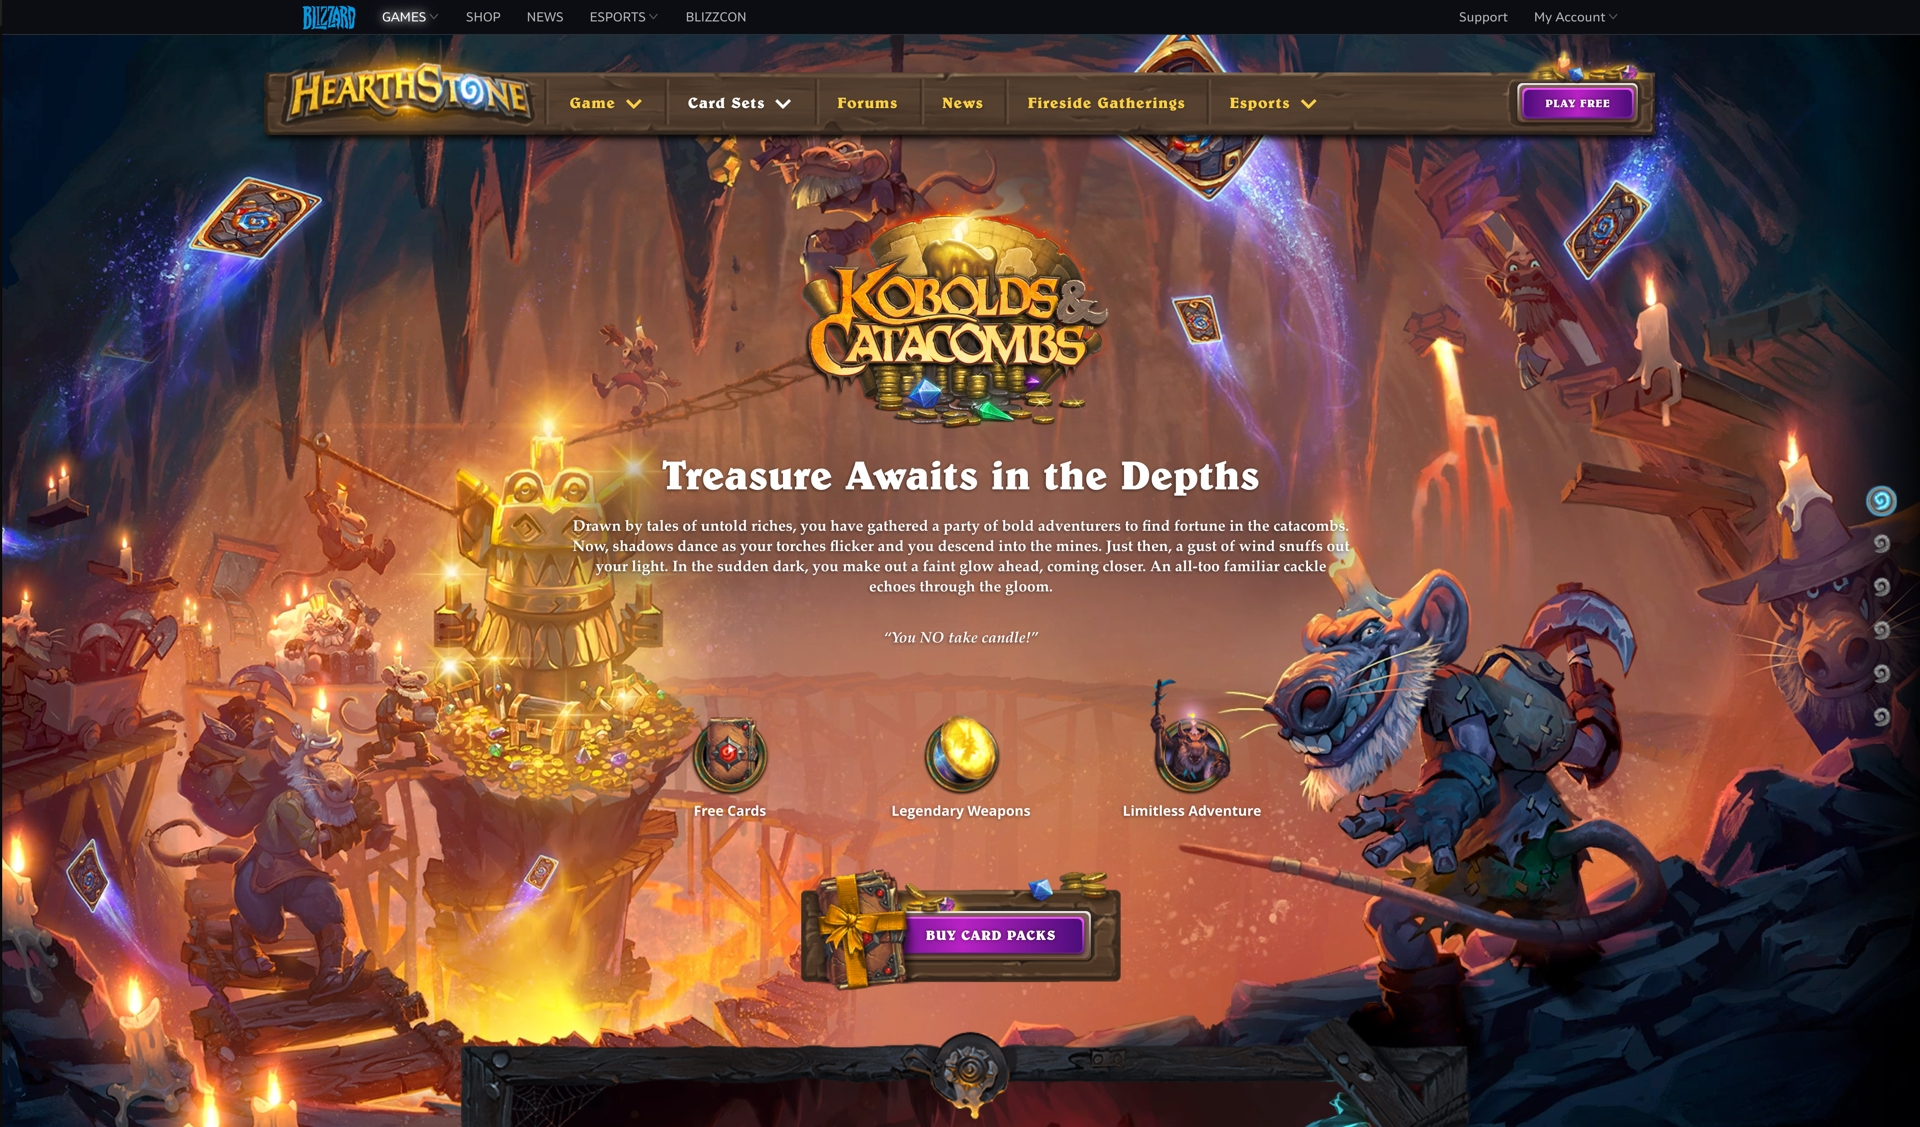 Intro + Video Carousal  - Watching in-game videos and hearing top talent discuss new cards or mechanics makes viewers more excited for expansion content.  - The landing page is long with multiple sections. We create a sidebar menu help user jump through different sections.